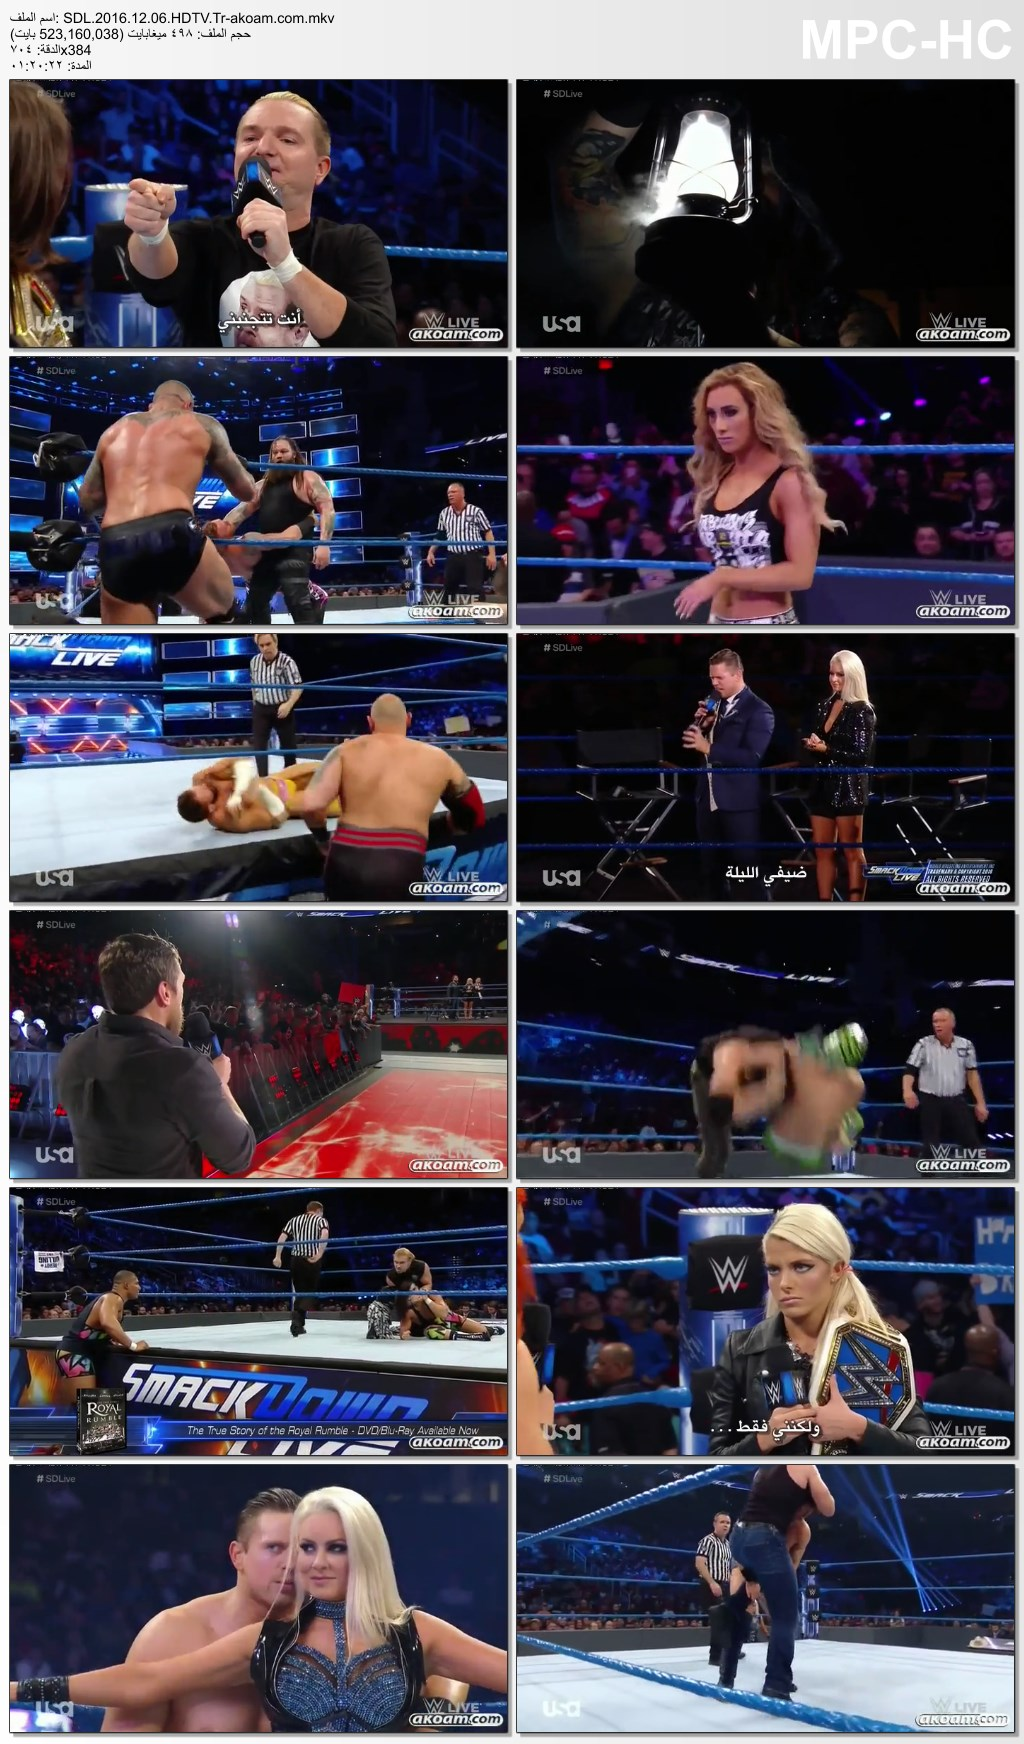 WWE Smackdown Live 2016,Smackdown,WWE